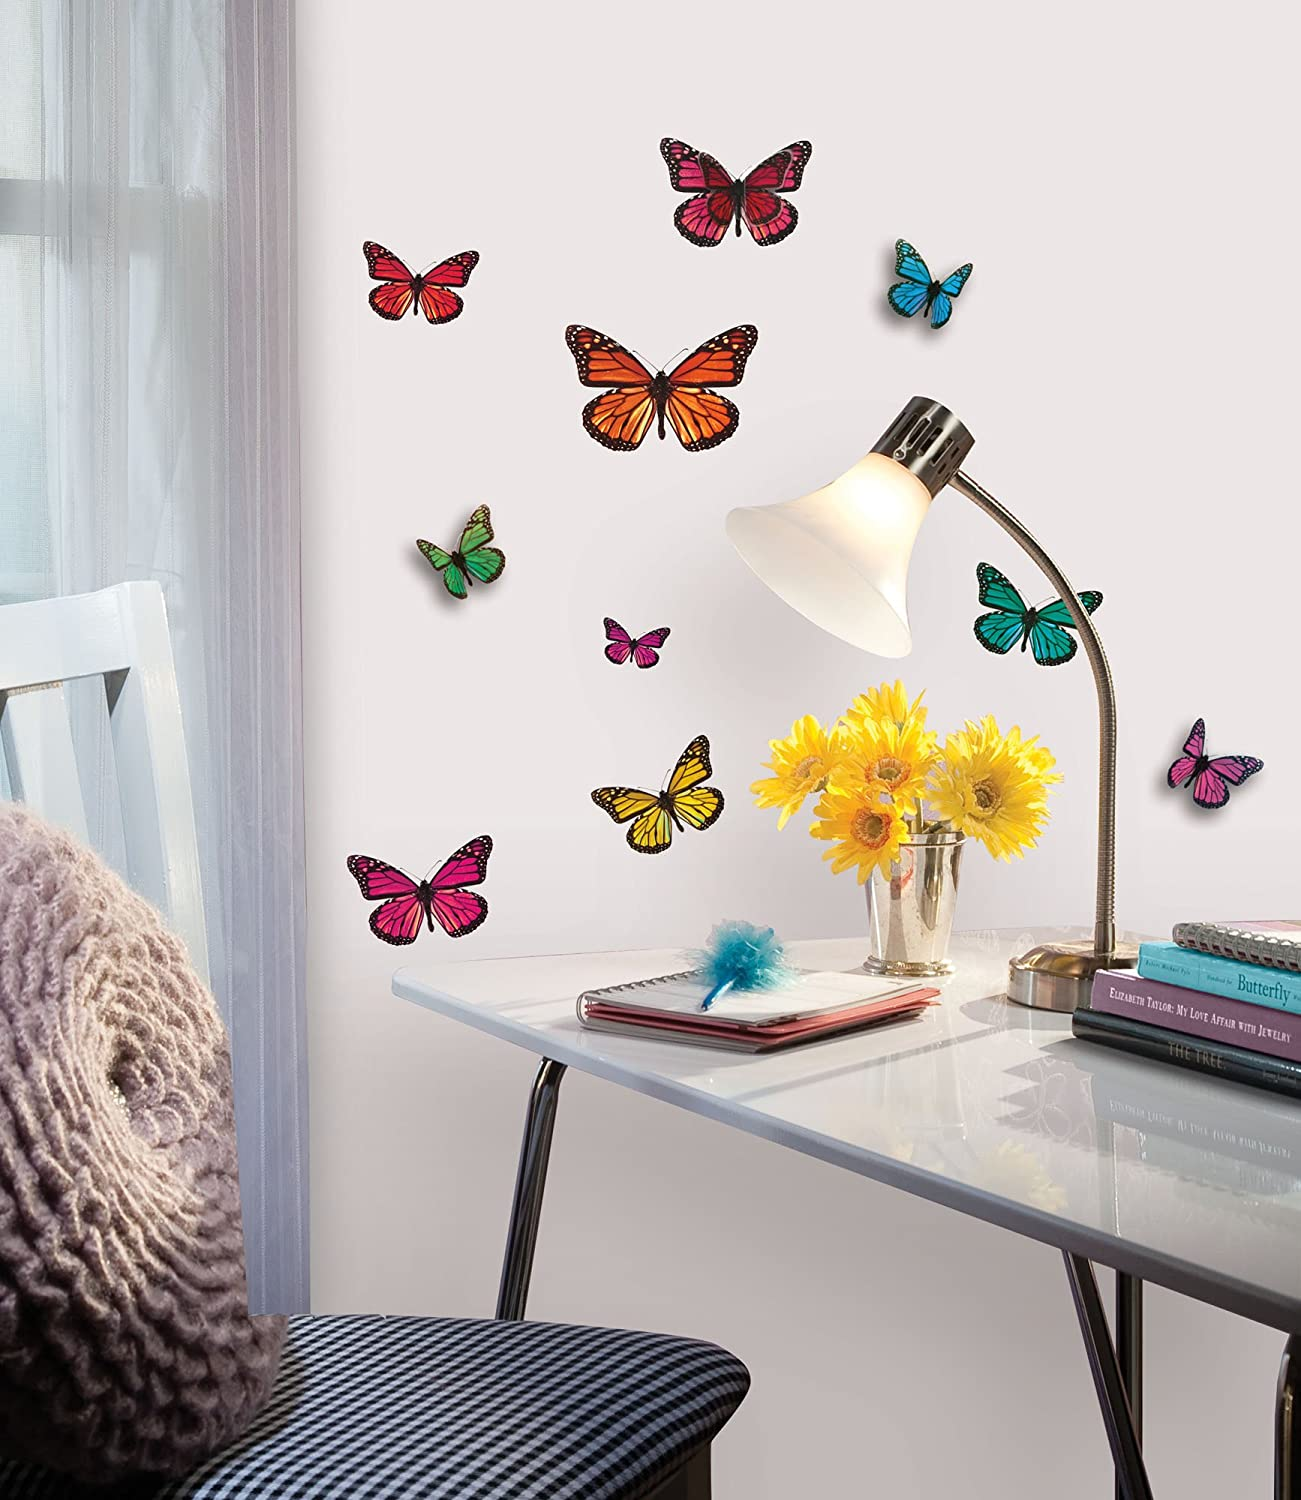 Roommates acc0003b3d butterfly 3 d wall decals 26 count roommates acc0003b3d butterfly 3 d wall decals 26 count decorative wall appliques amazon amipublicfo Images